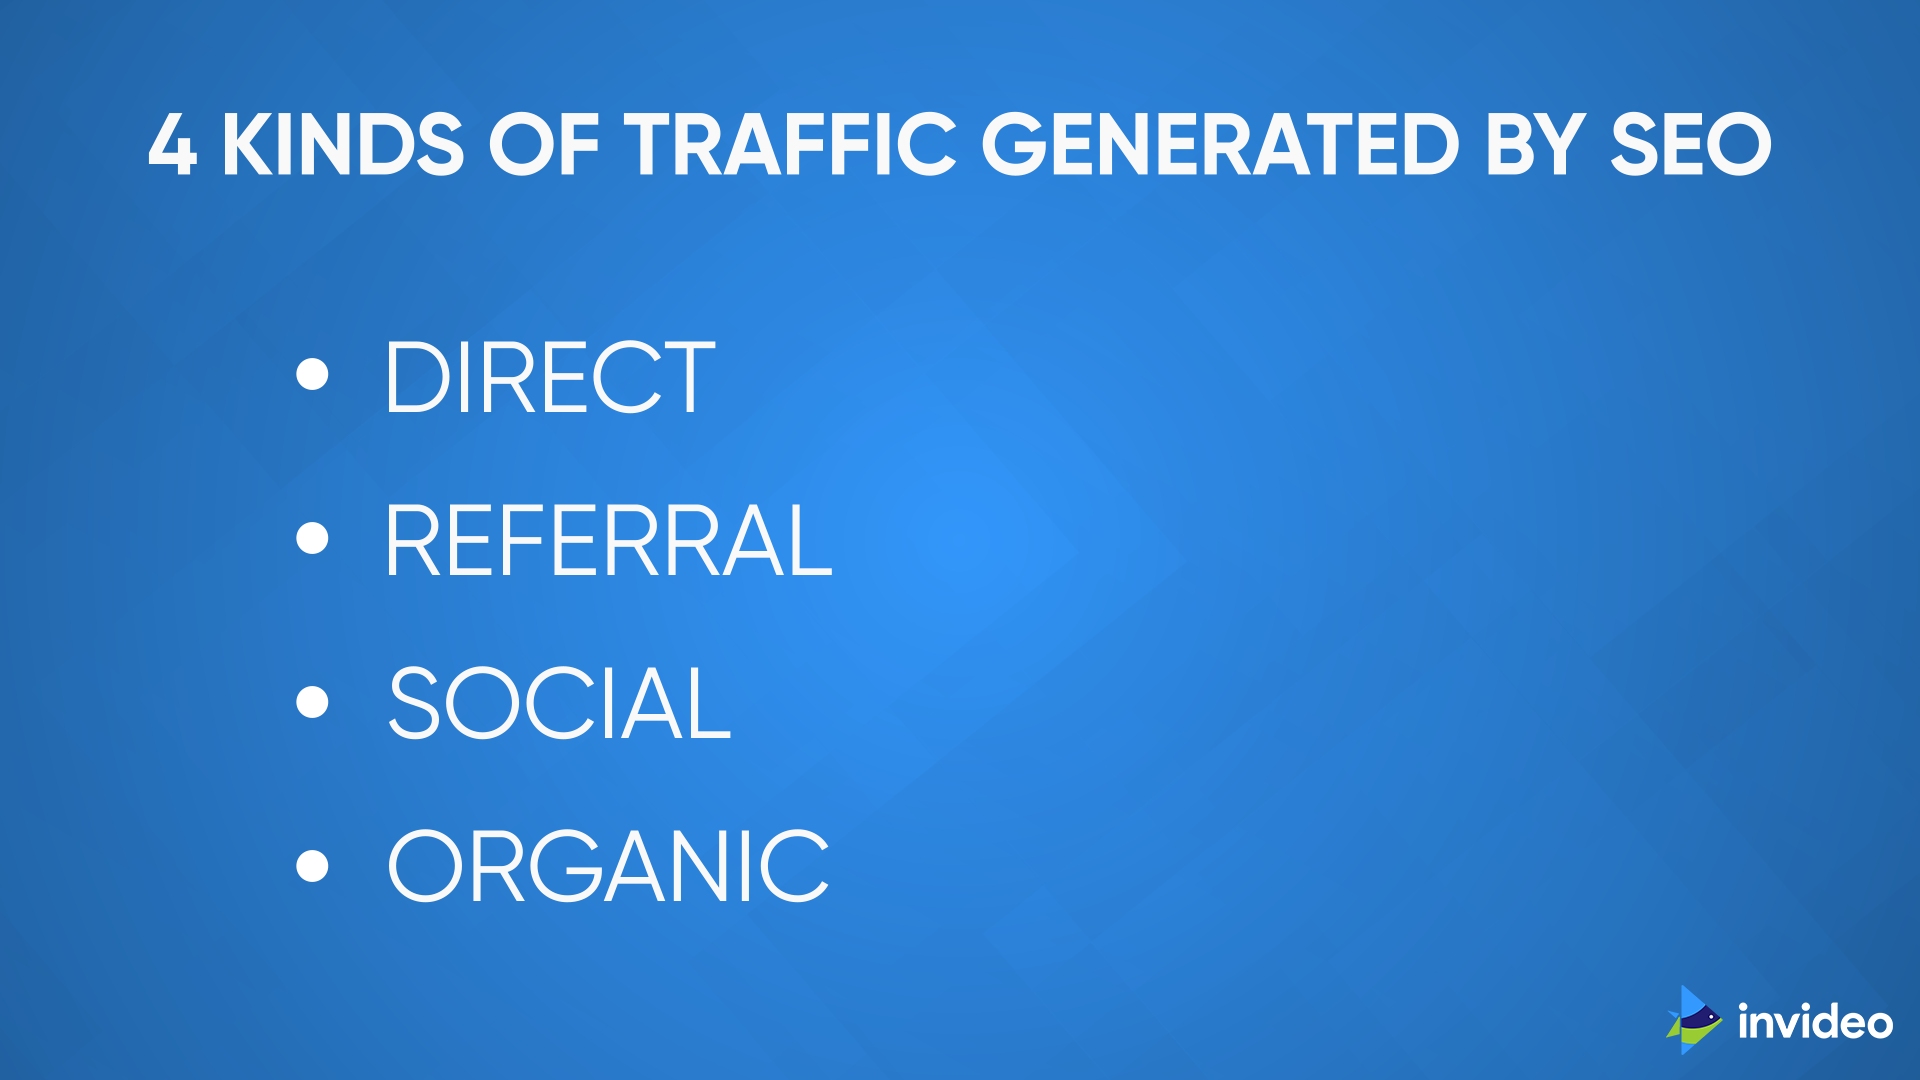 4 Kinds Of Traffic Generated by SEO